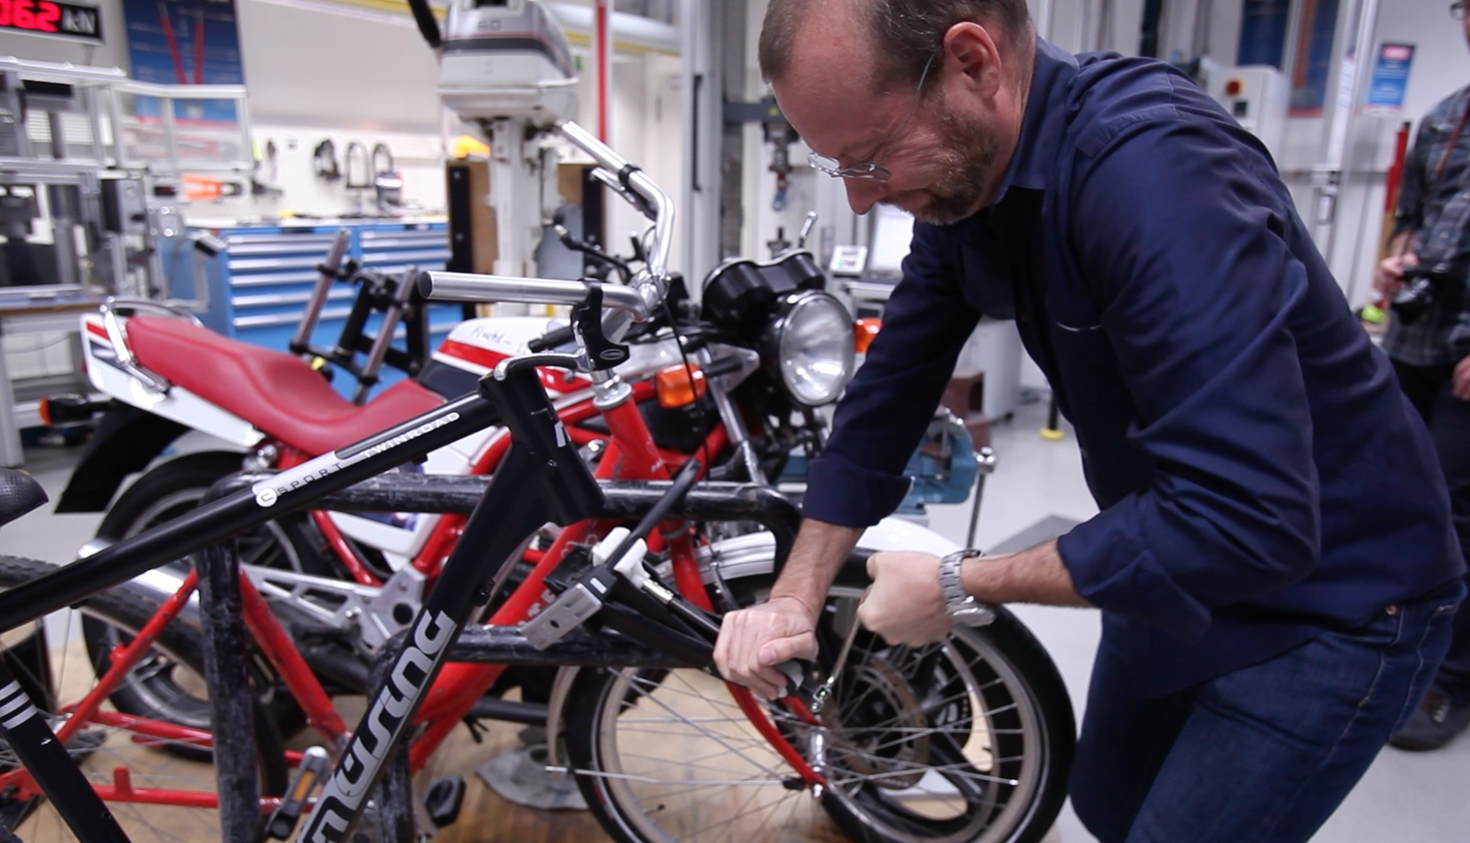 BicycleSPACE cofounder, Erik Kugler, at Abus' legendary lock fail test facility in Germany.